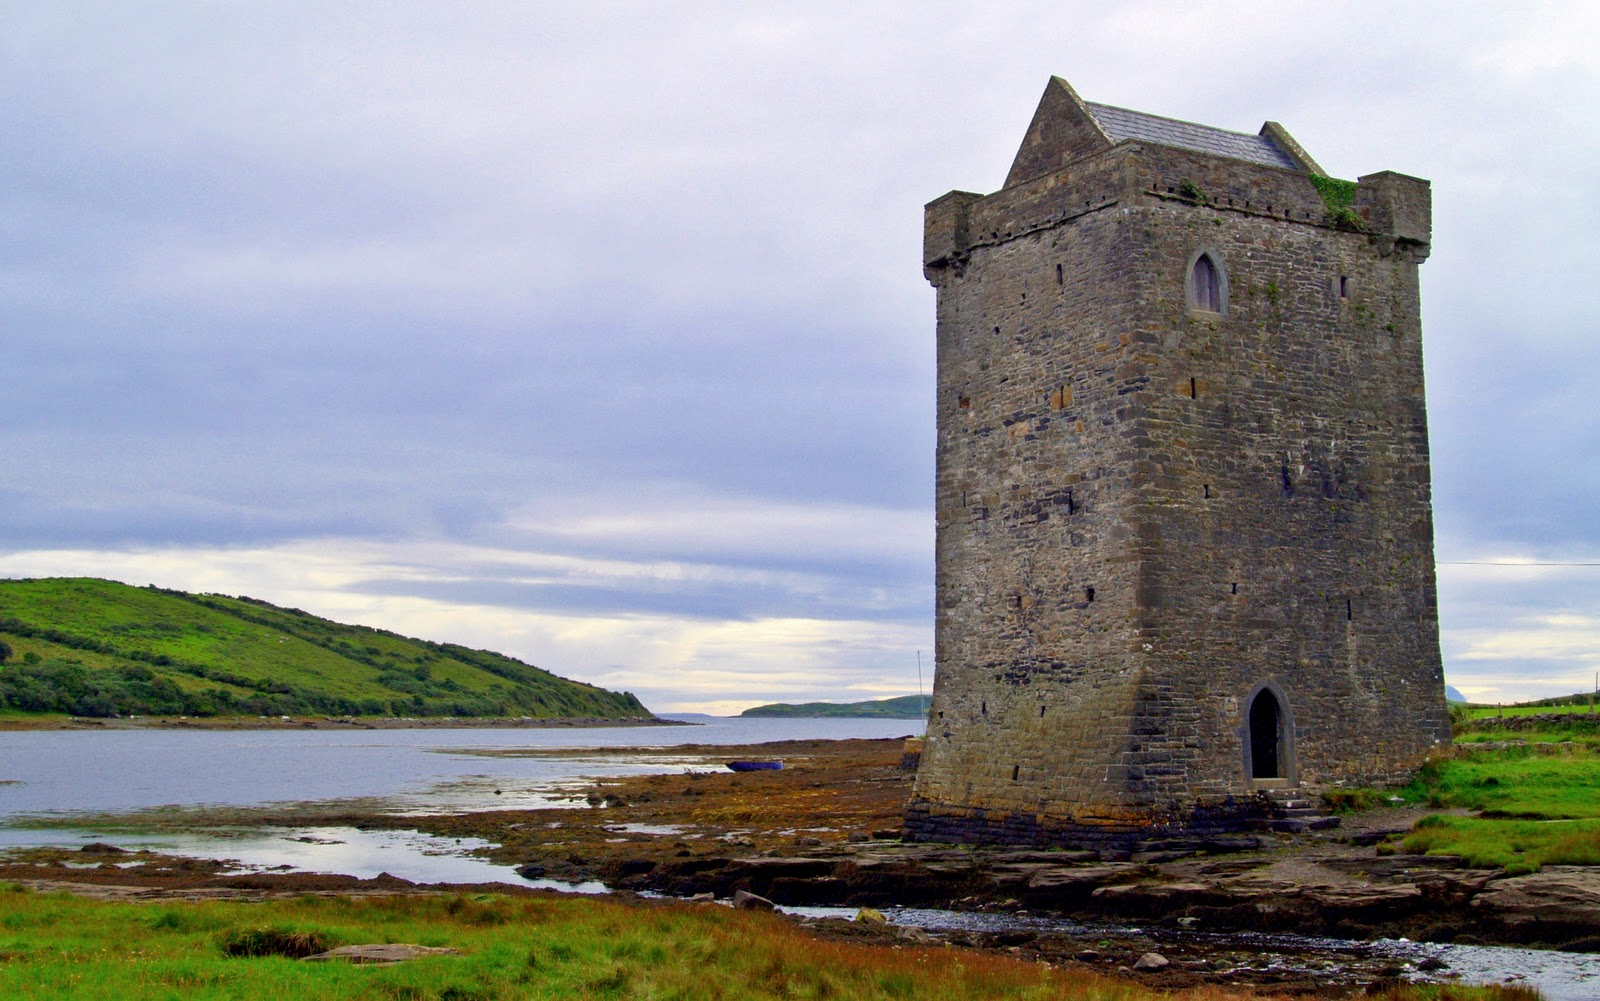 Grainne o'malley's castle -